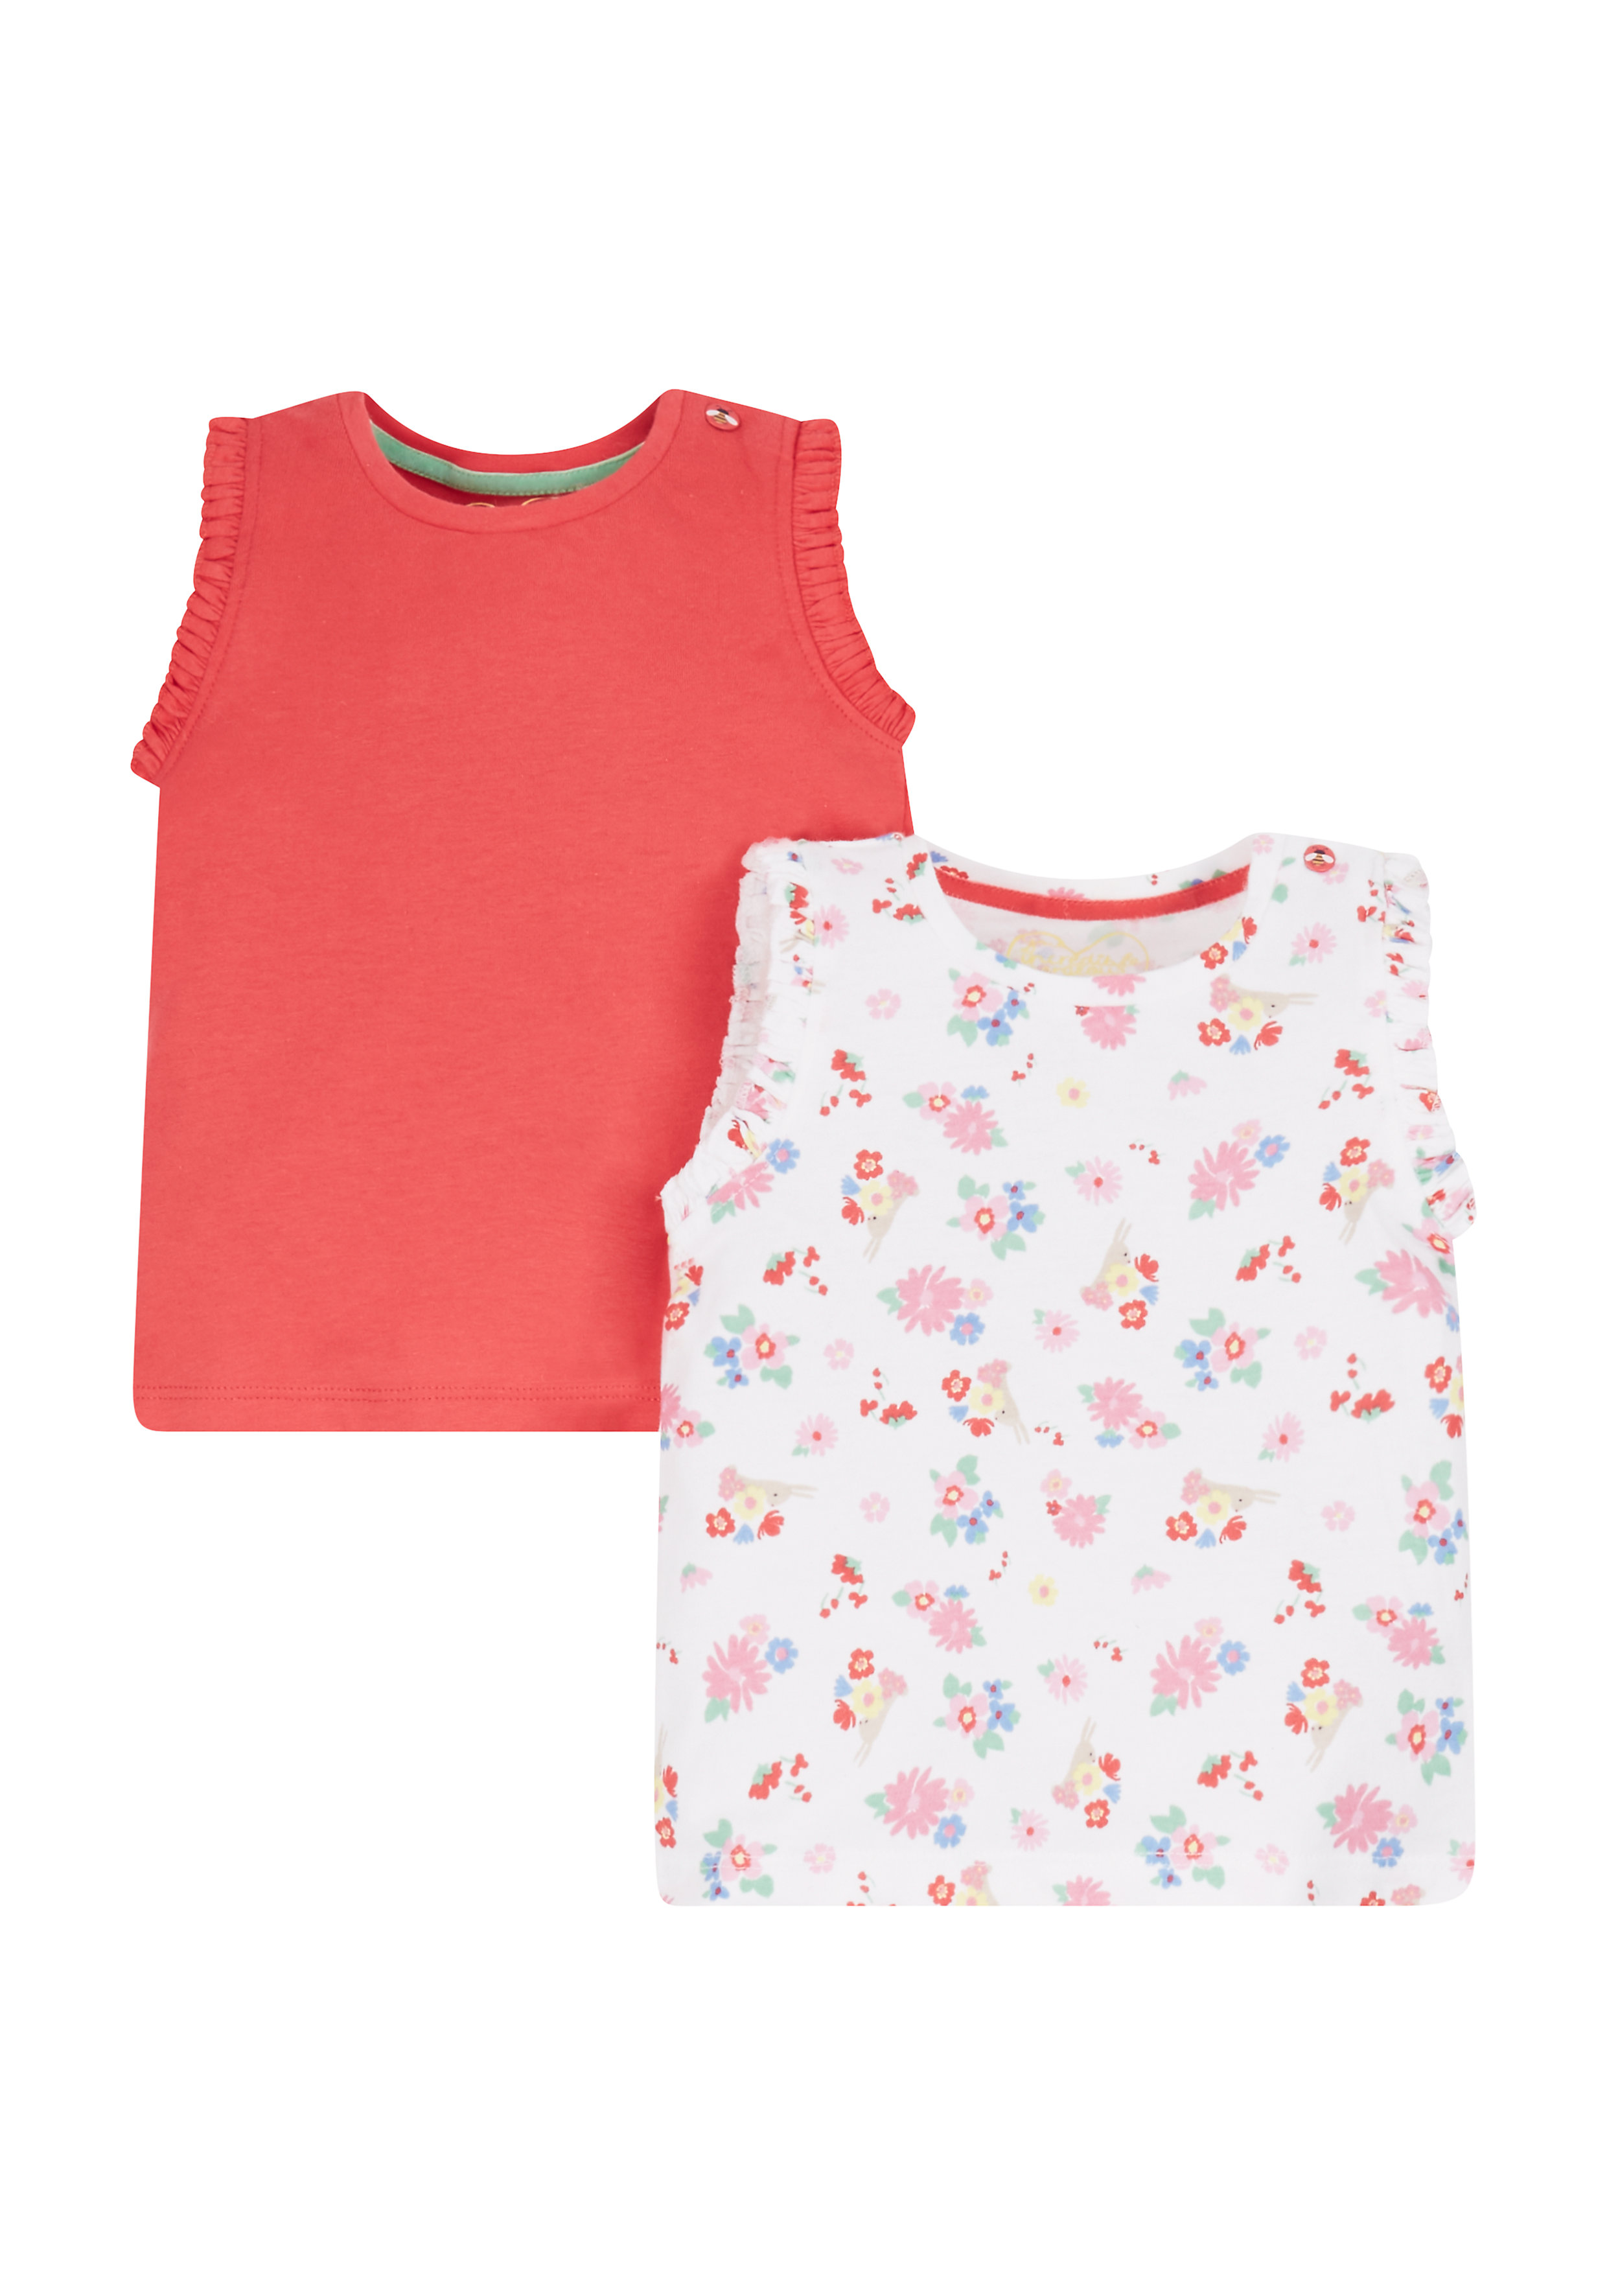 Mothercare   Girls Frilly Vests - 2 Pack - Red